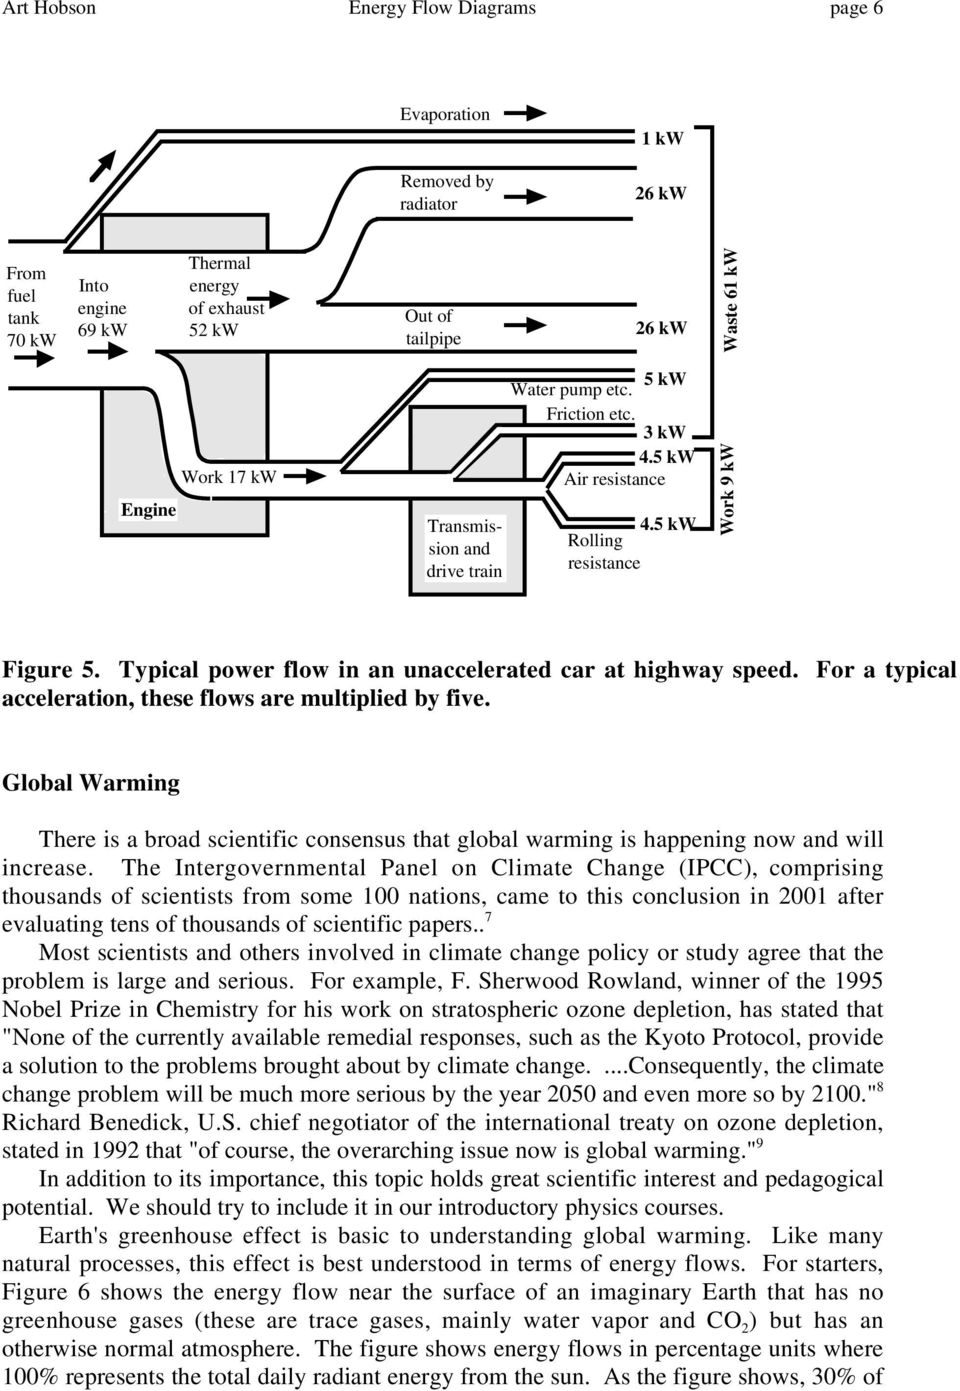 page_6 art hobson energy flow diagrams page 1 pdf